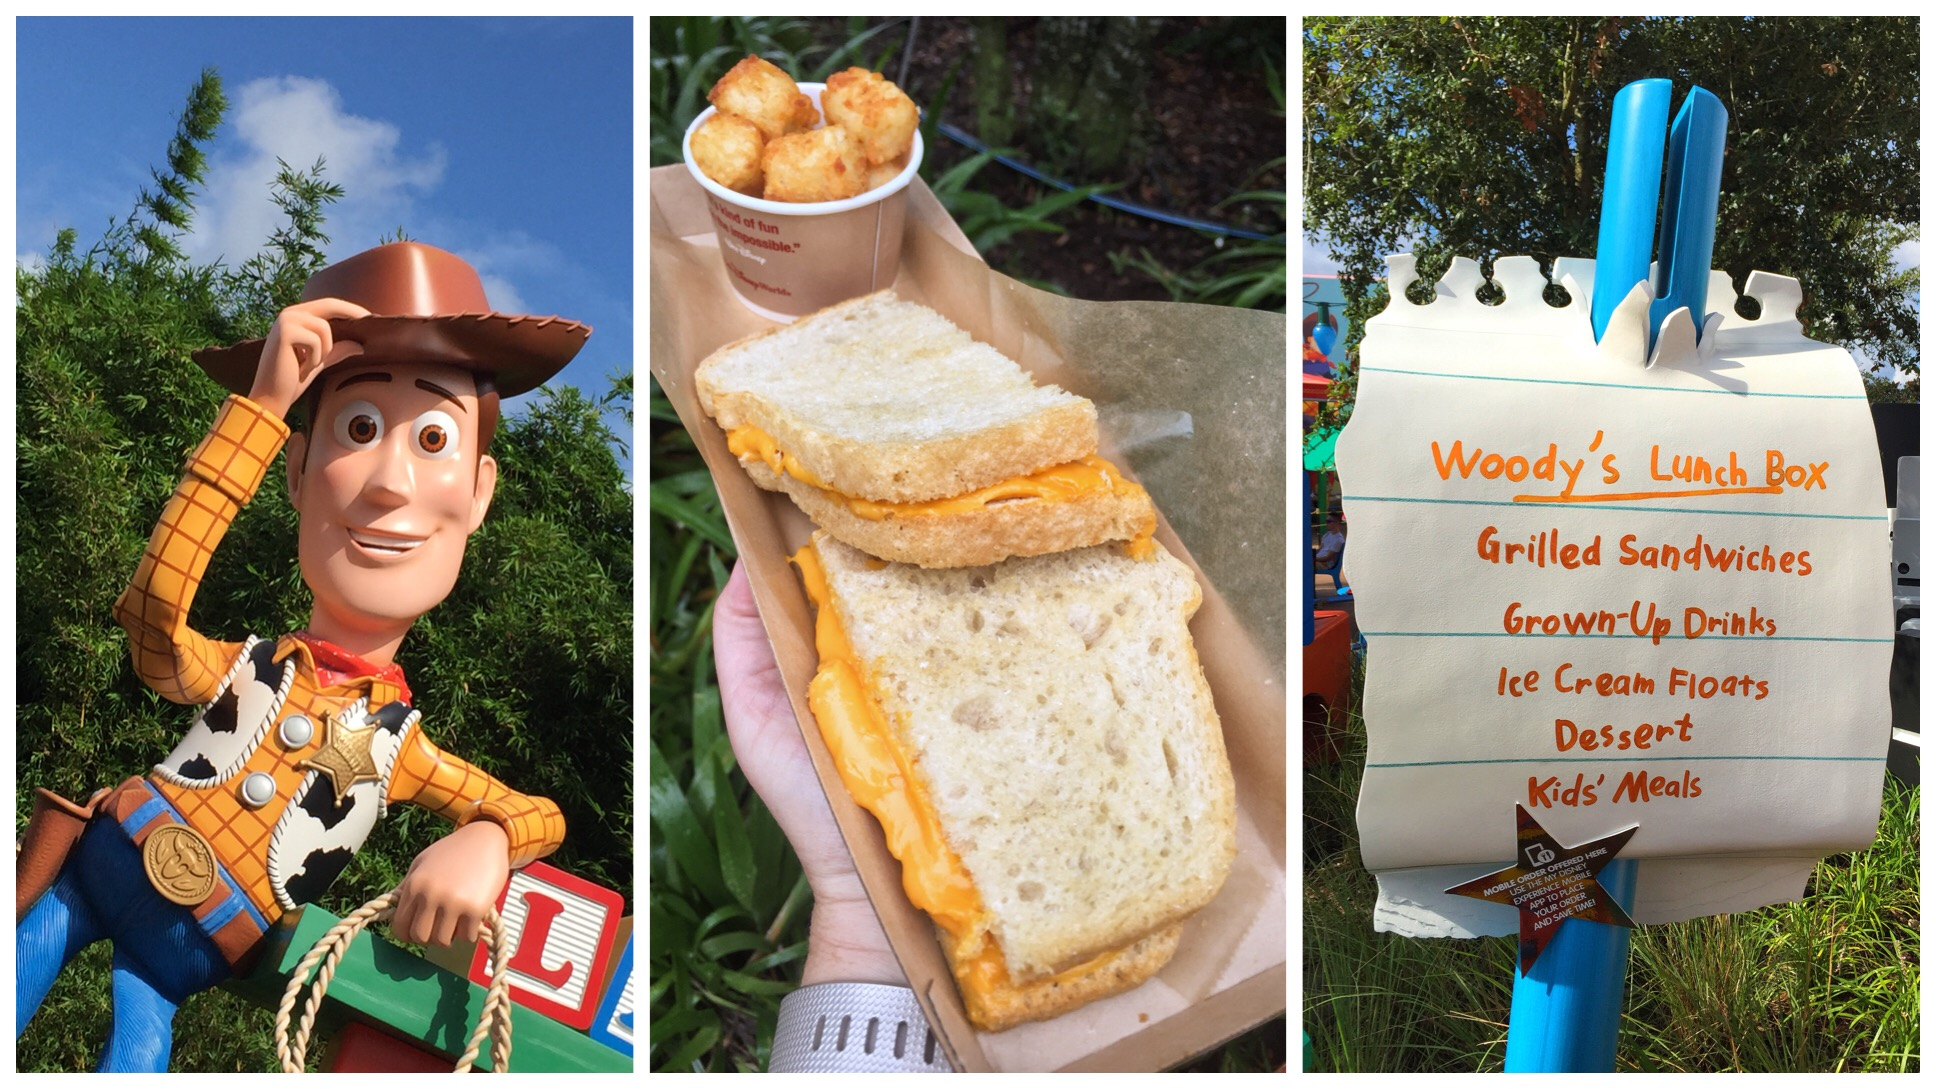 Vegan Food at Woody's Lunch Box in Walt Disney World's Toy Story Land